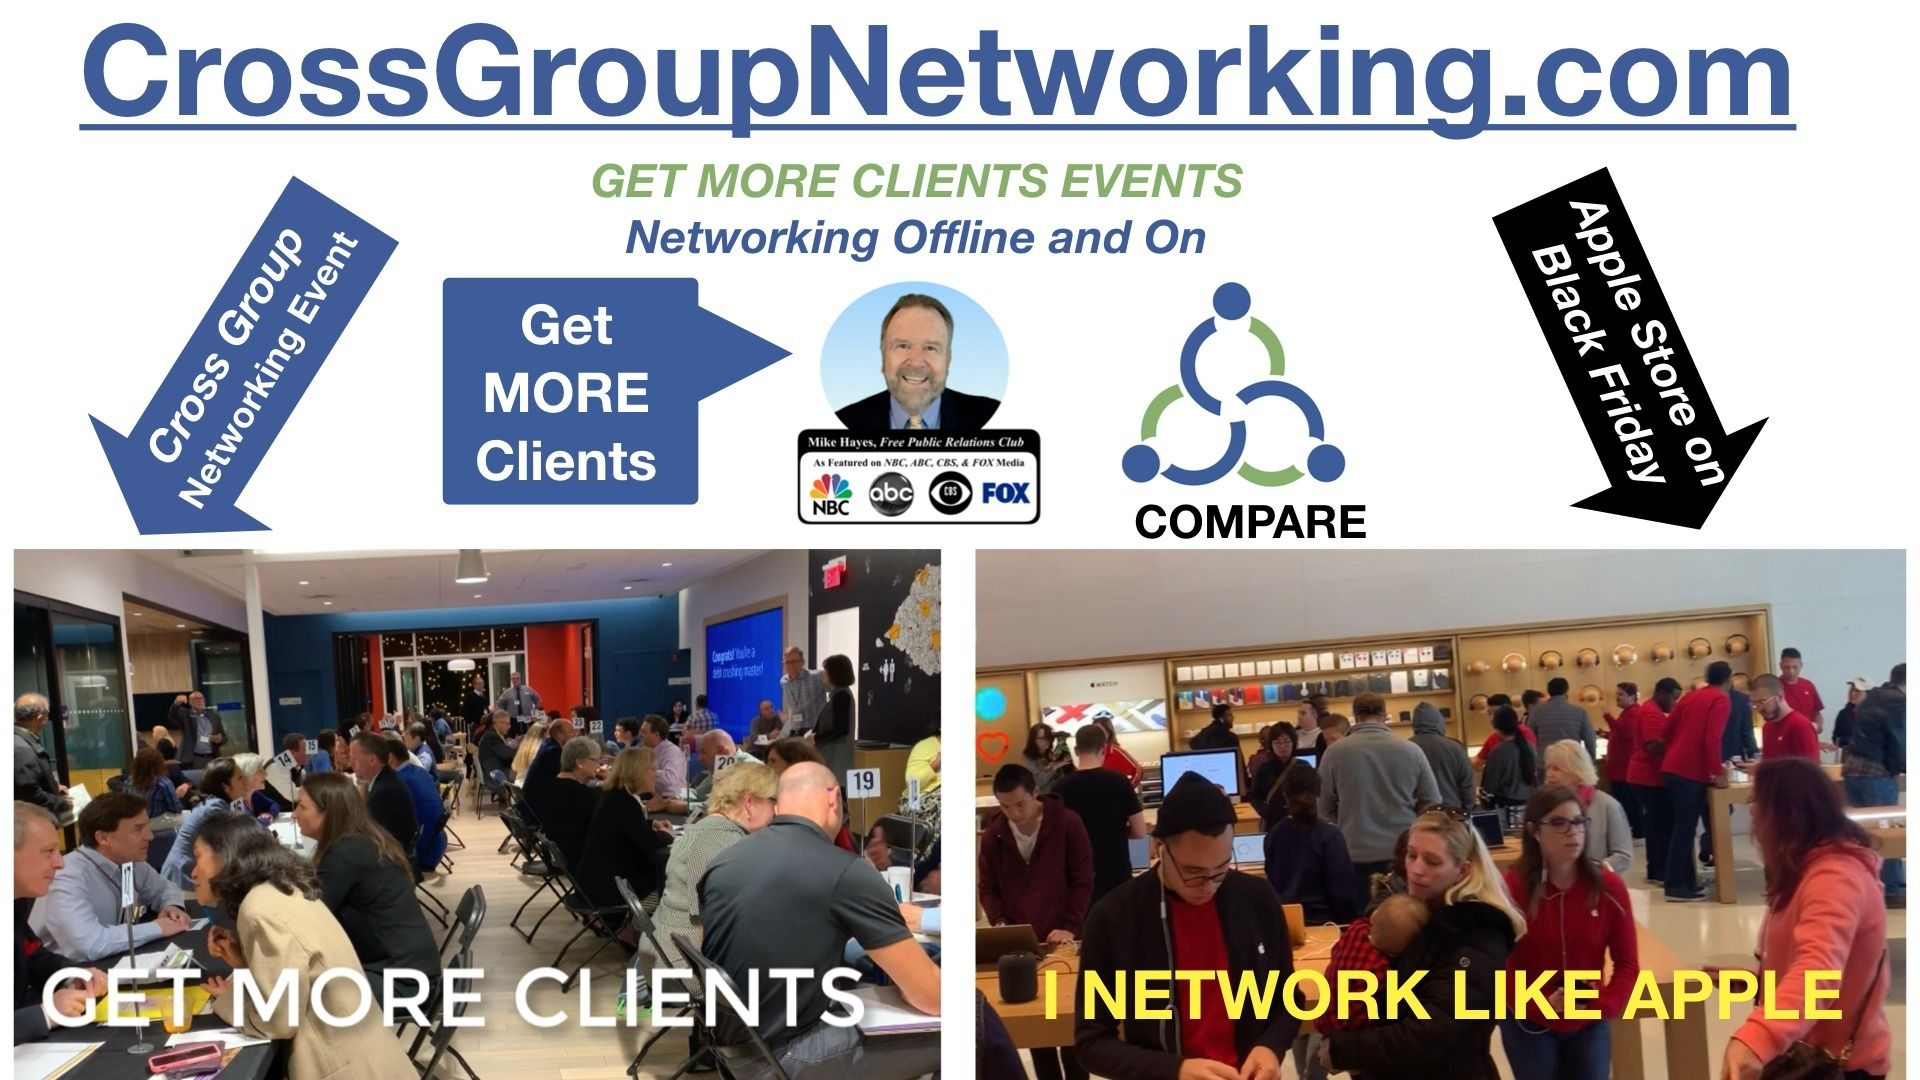 ENTREPRENEUR & BUSINESS PROFESSIONAL CROSS-GROUP NETWORKING.